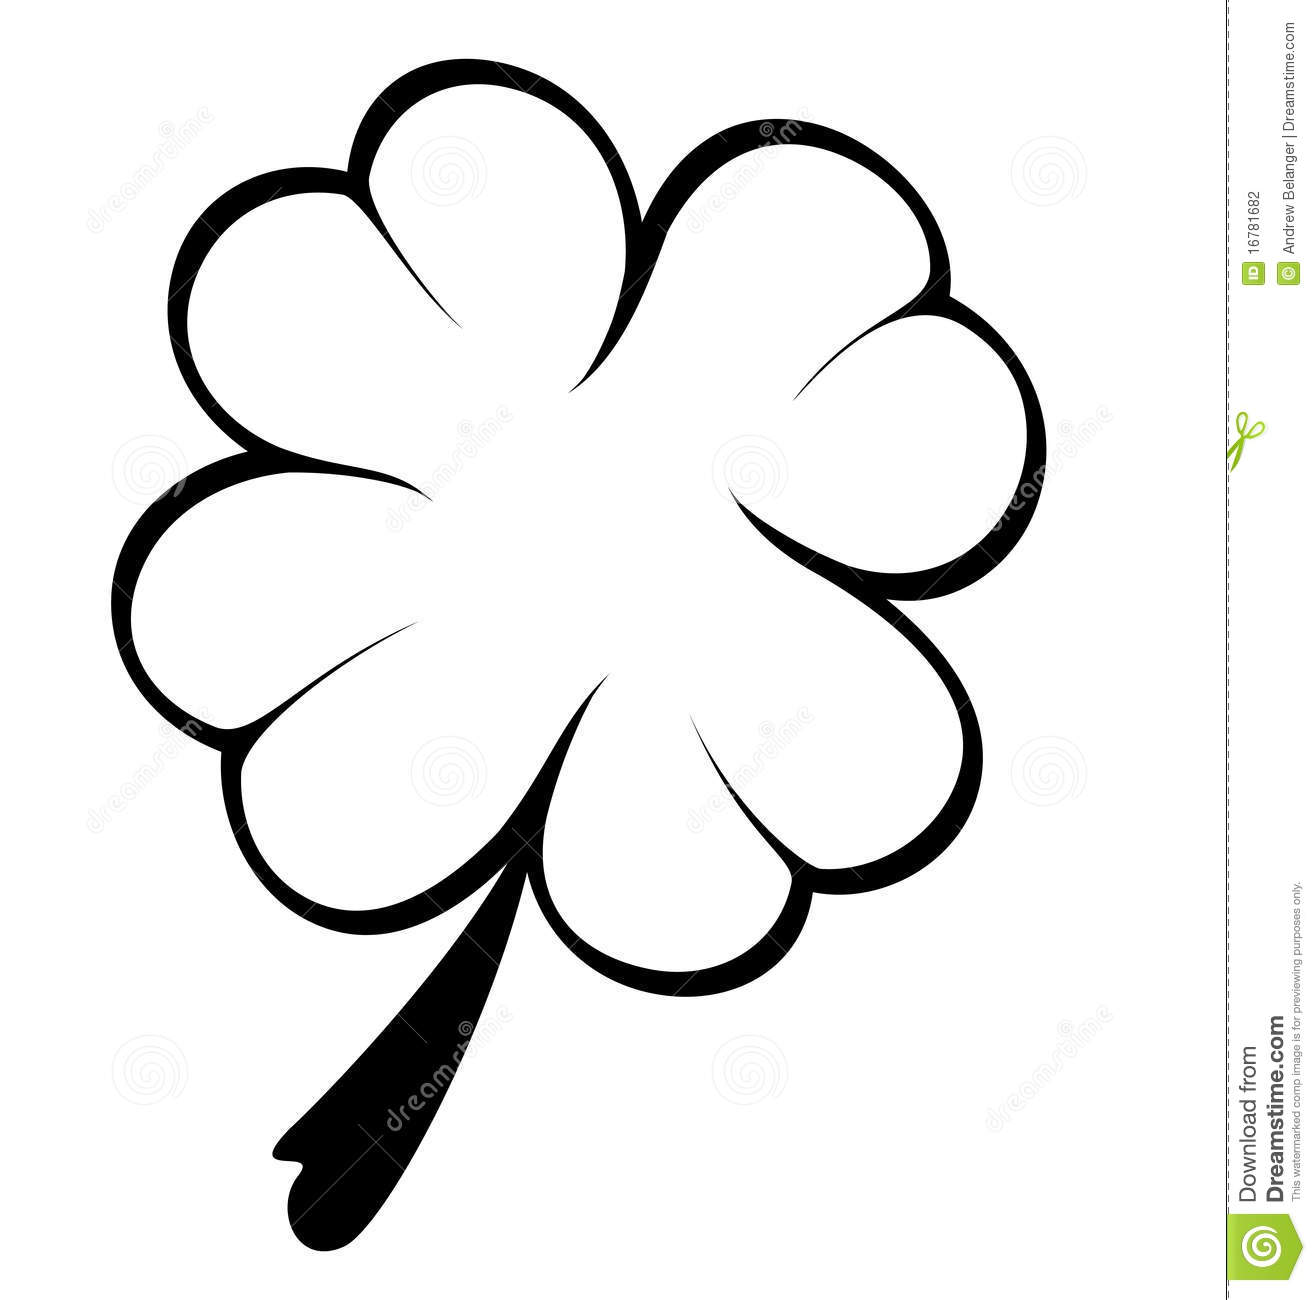 Black And White Four Leaf Clover Stock Vector.